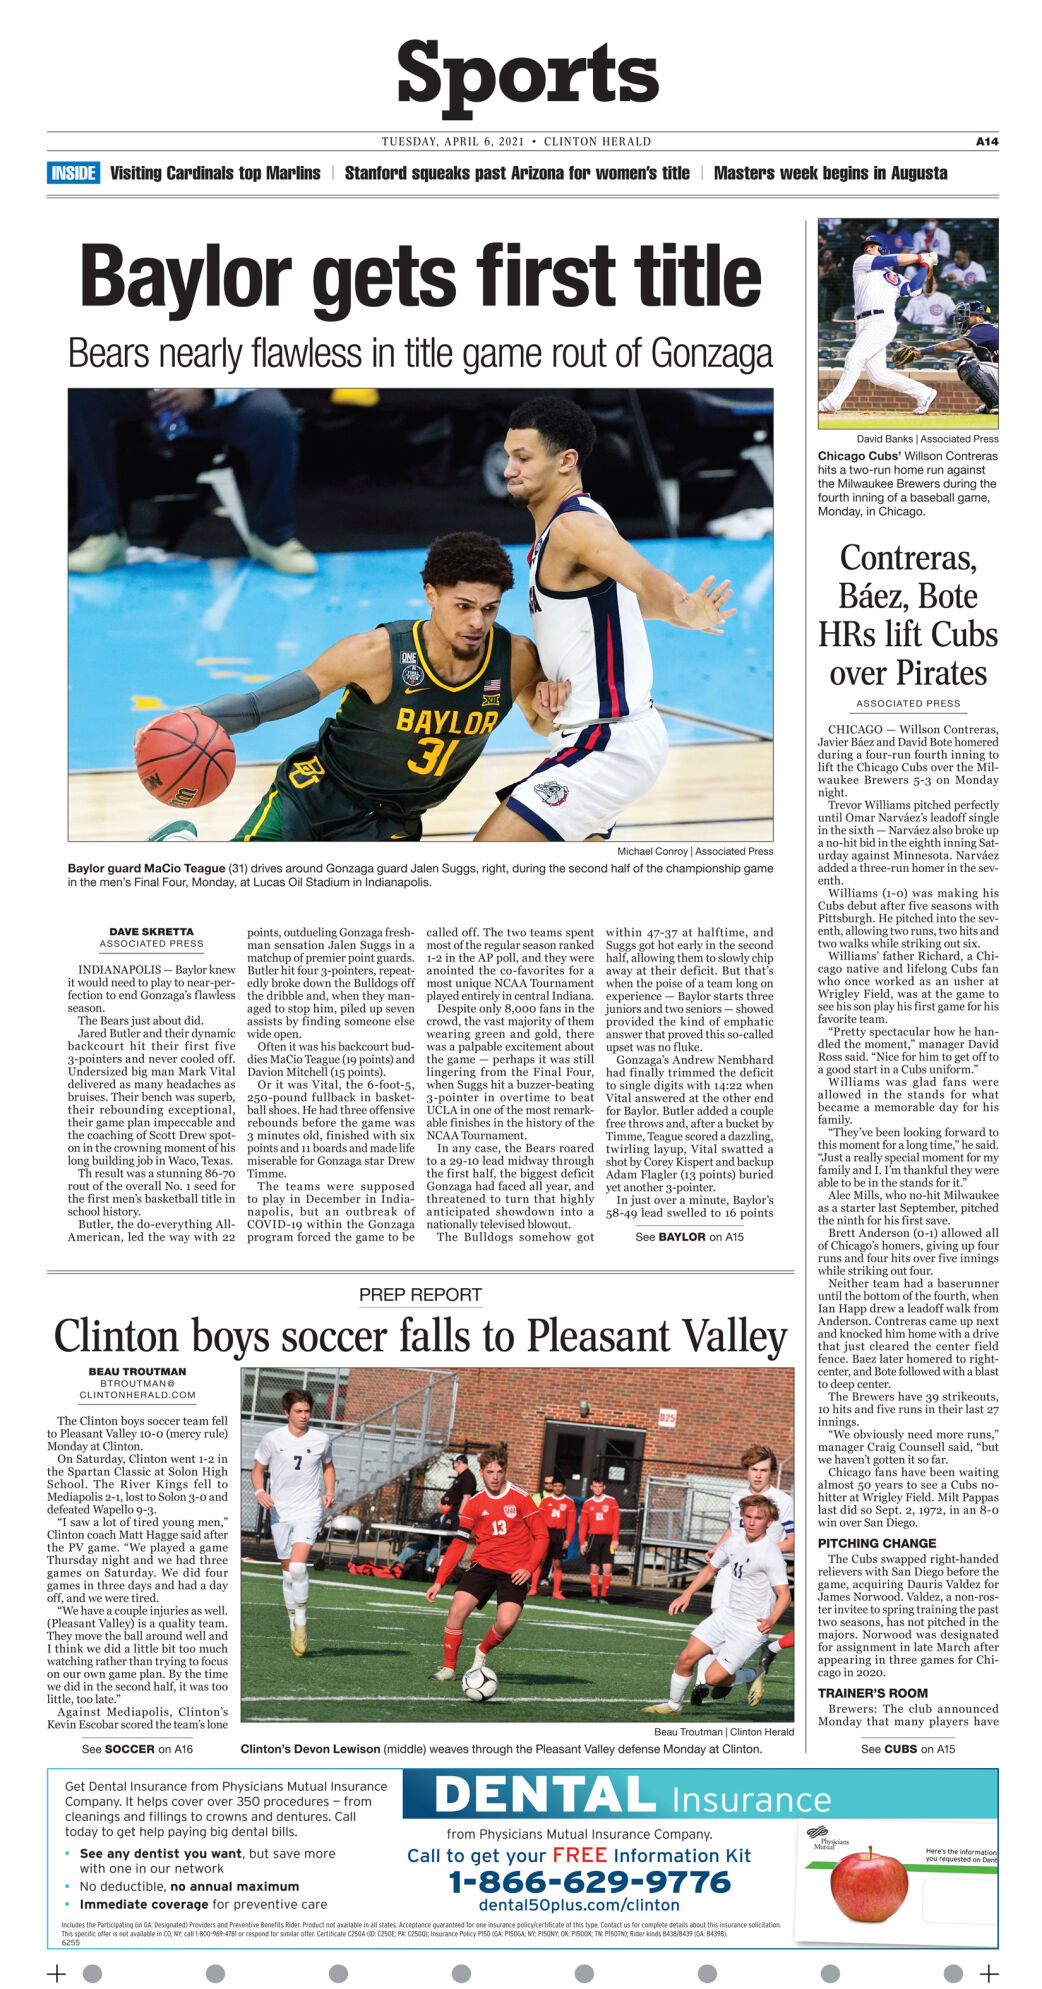 April 6, 2021 Front Sports page